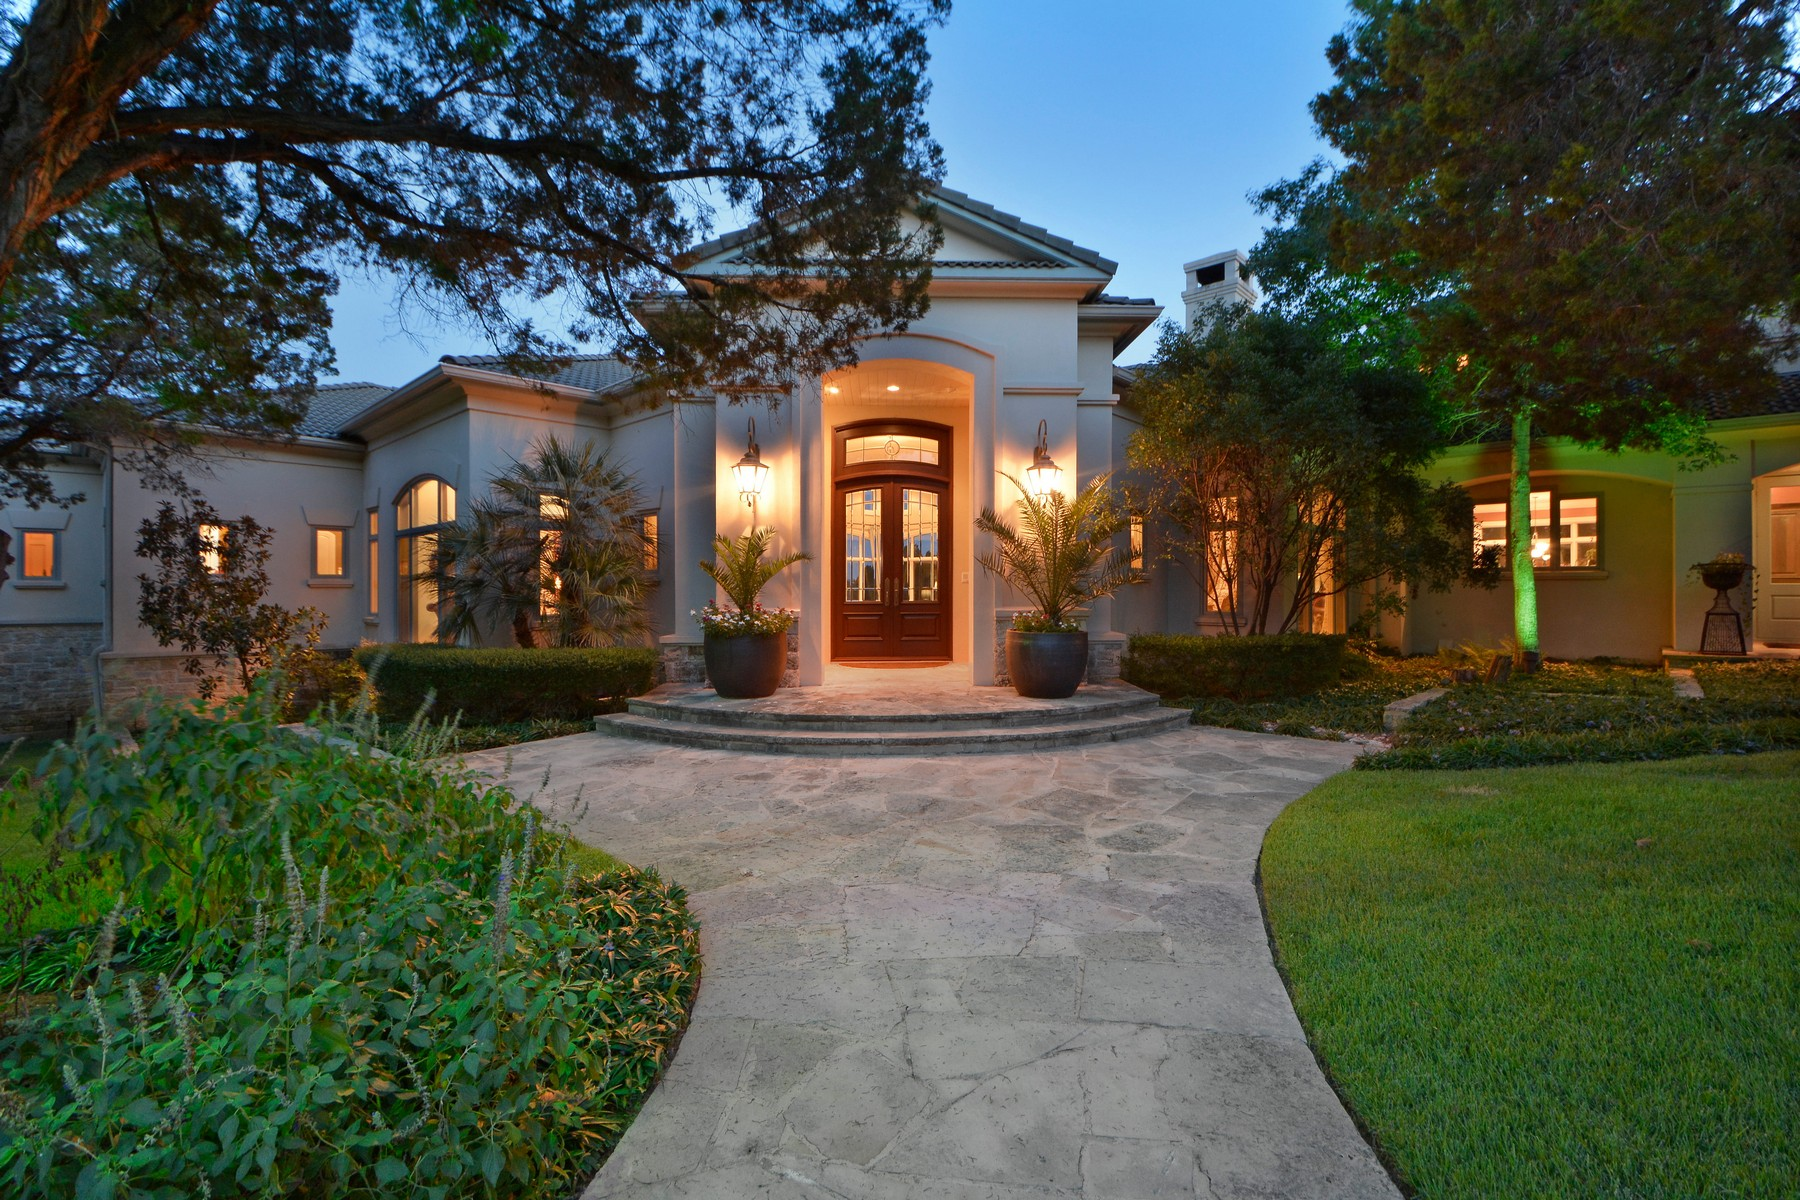 Single Family Home for Sale at Extremely Rare and Beautiful Equestrian Ranch 905 Crystal Mountain Dr Austin, Texas 78735 United States